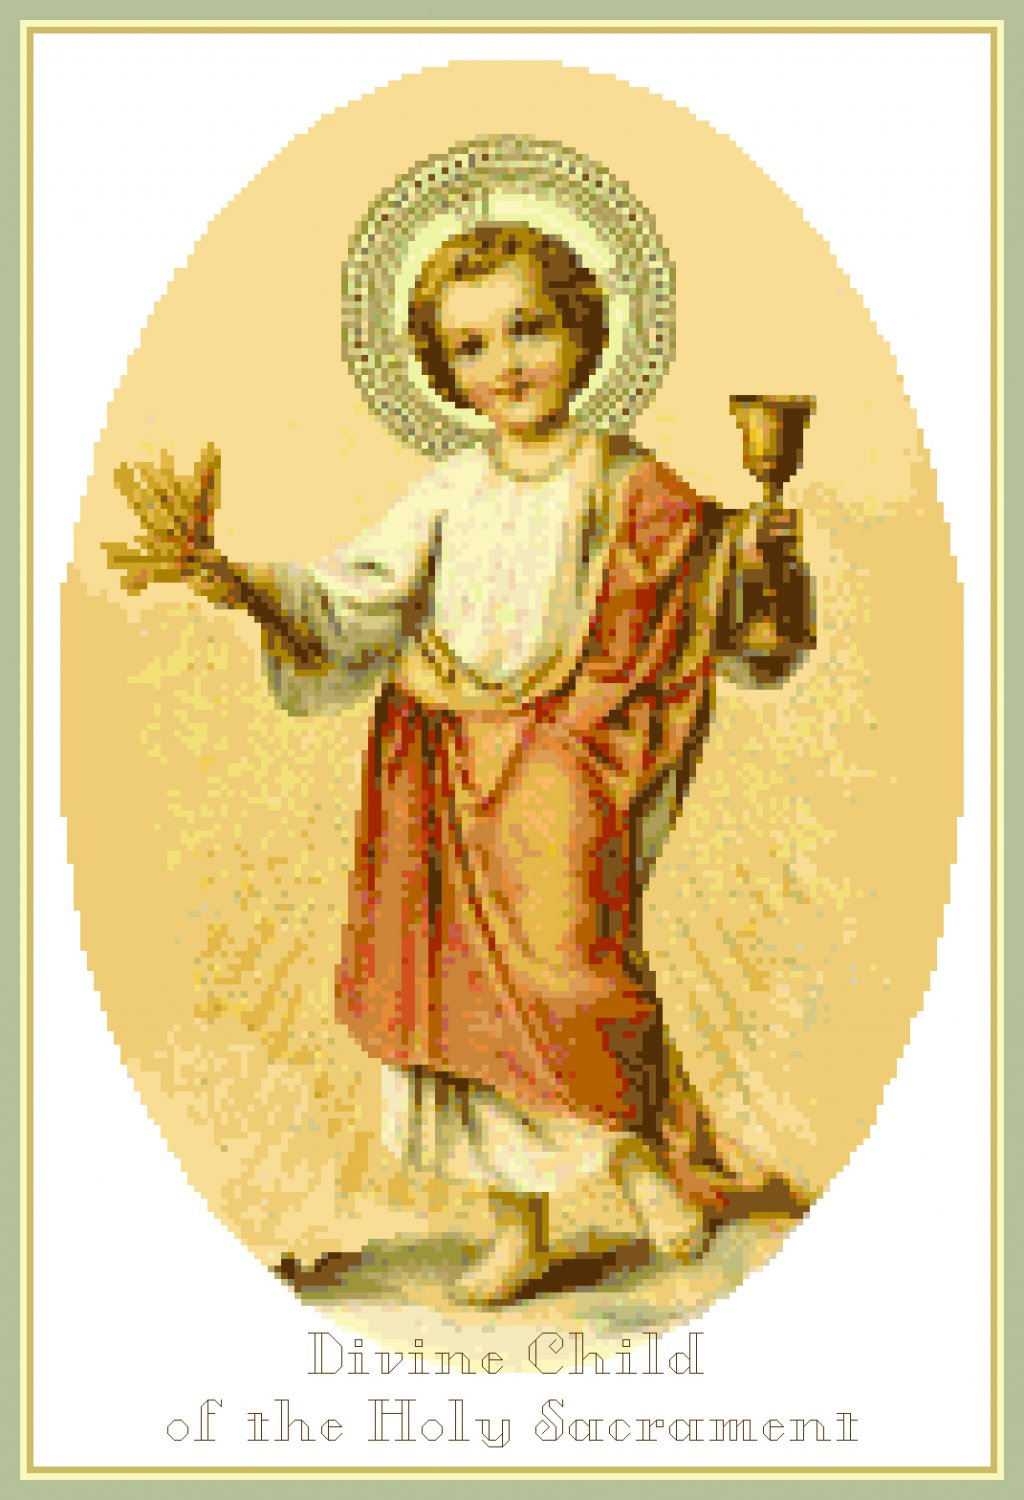 Divine Child of the Holy Sacrament